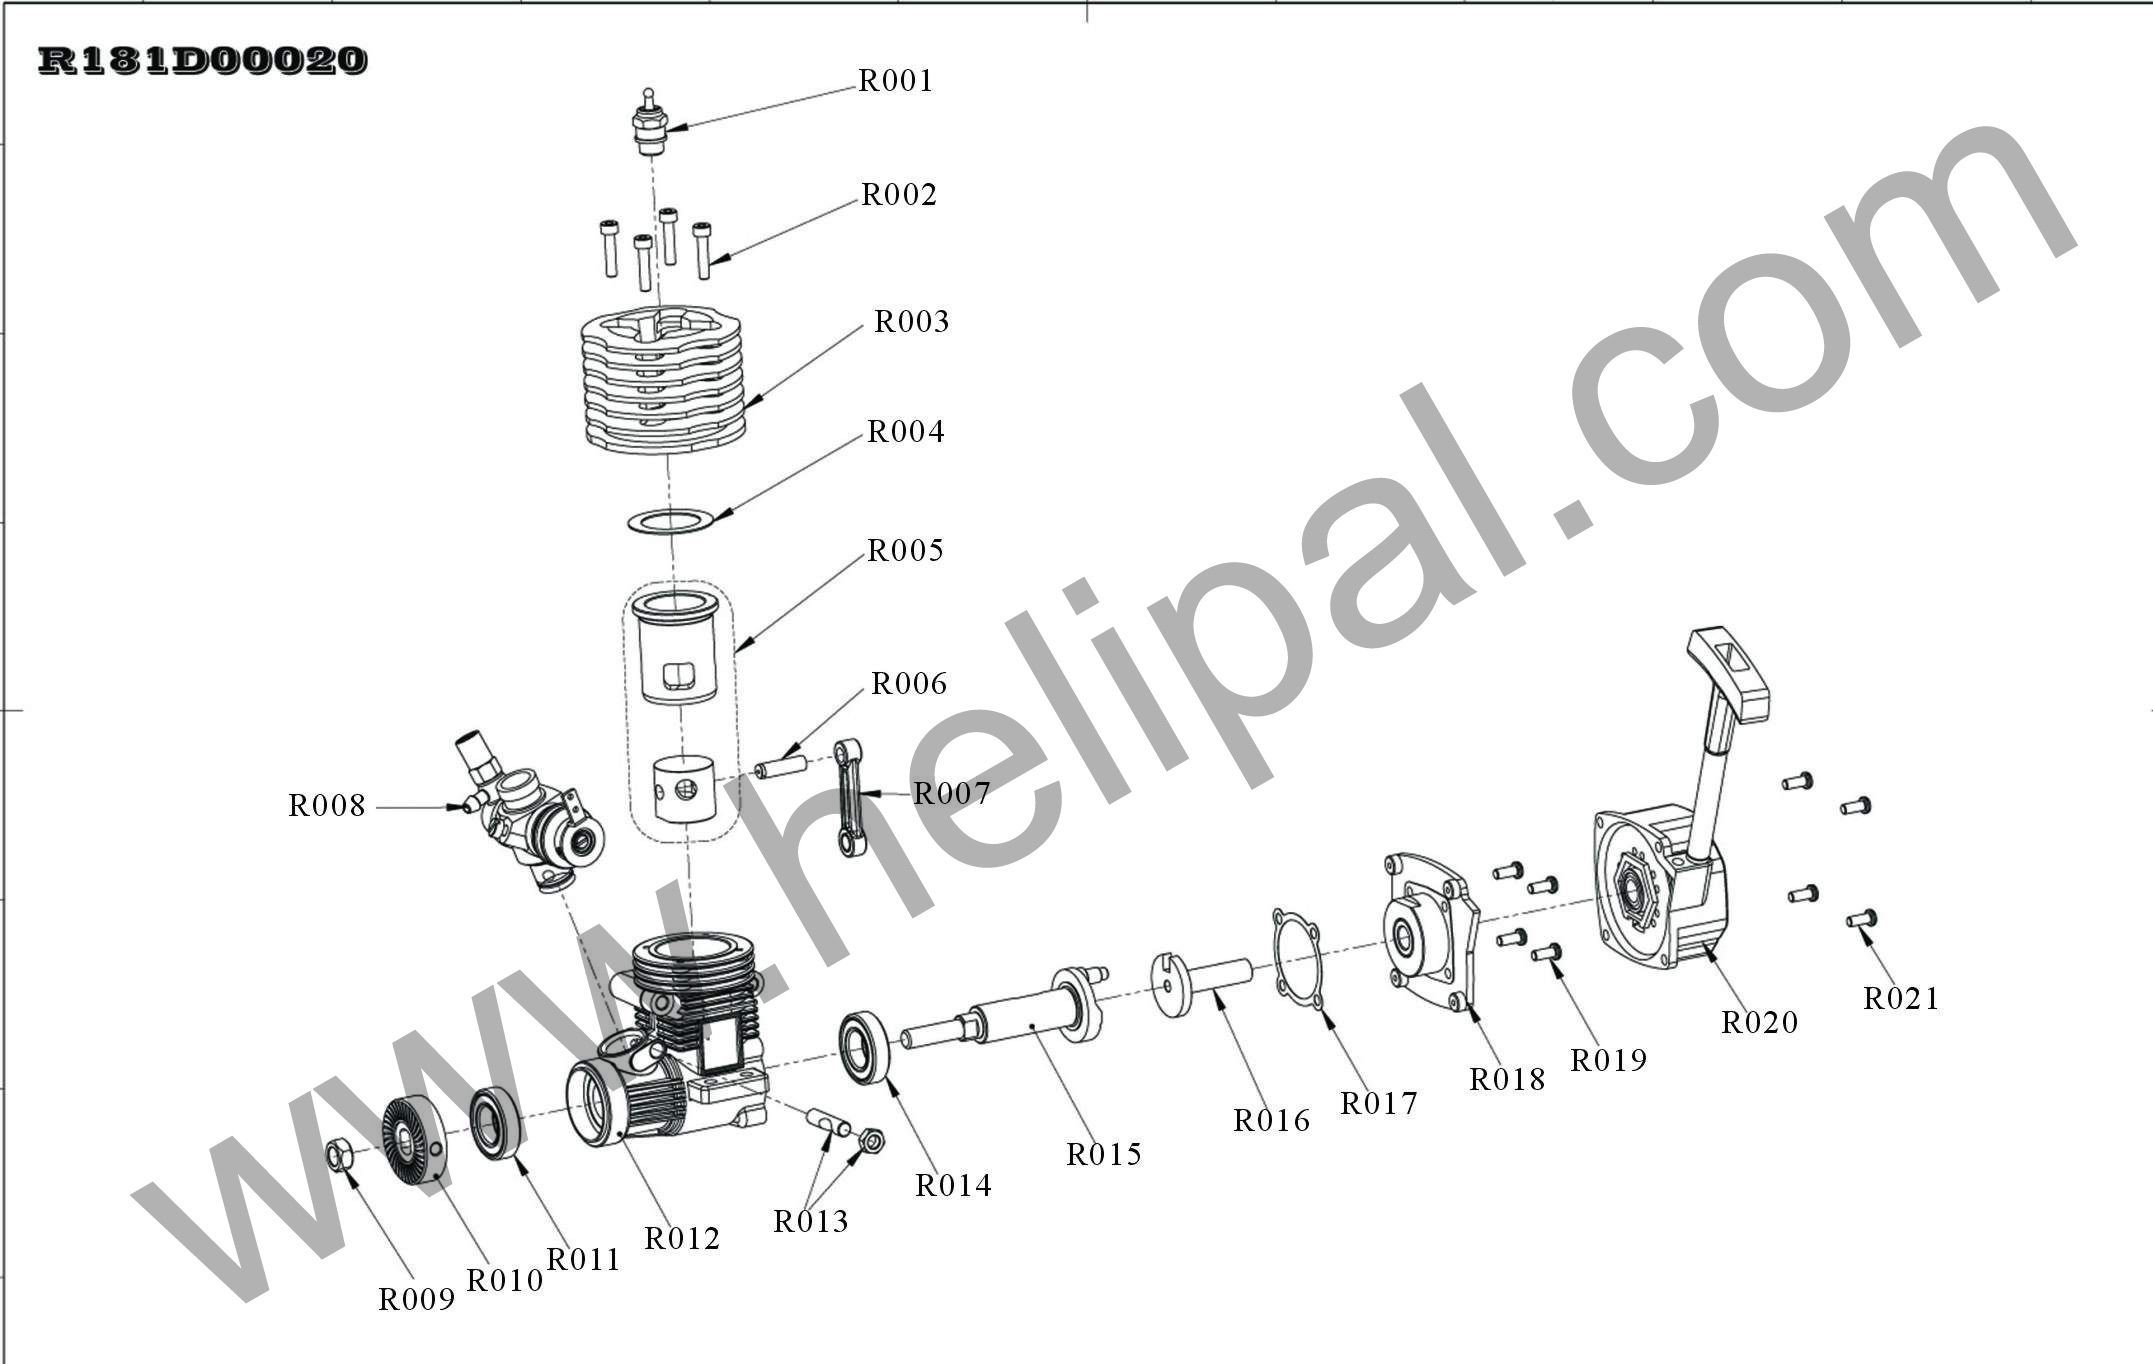 Asco Solenoid Valve Wiring Diagram Furthermore 2003 Tahoe Rear Ac